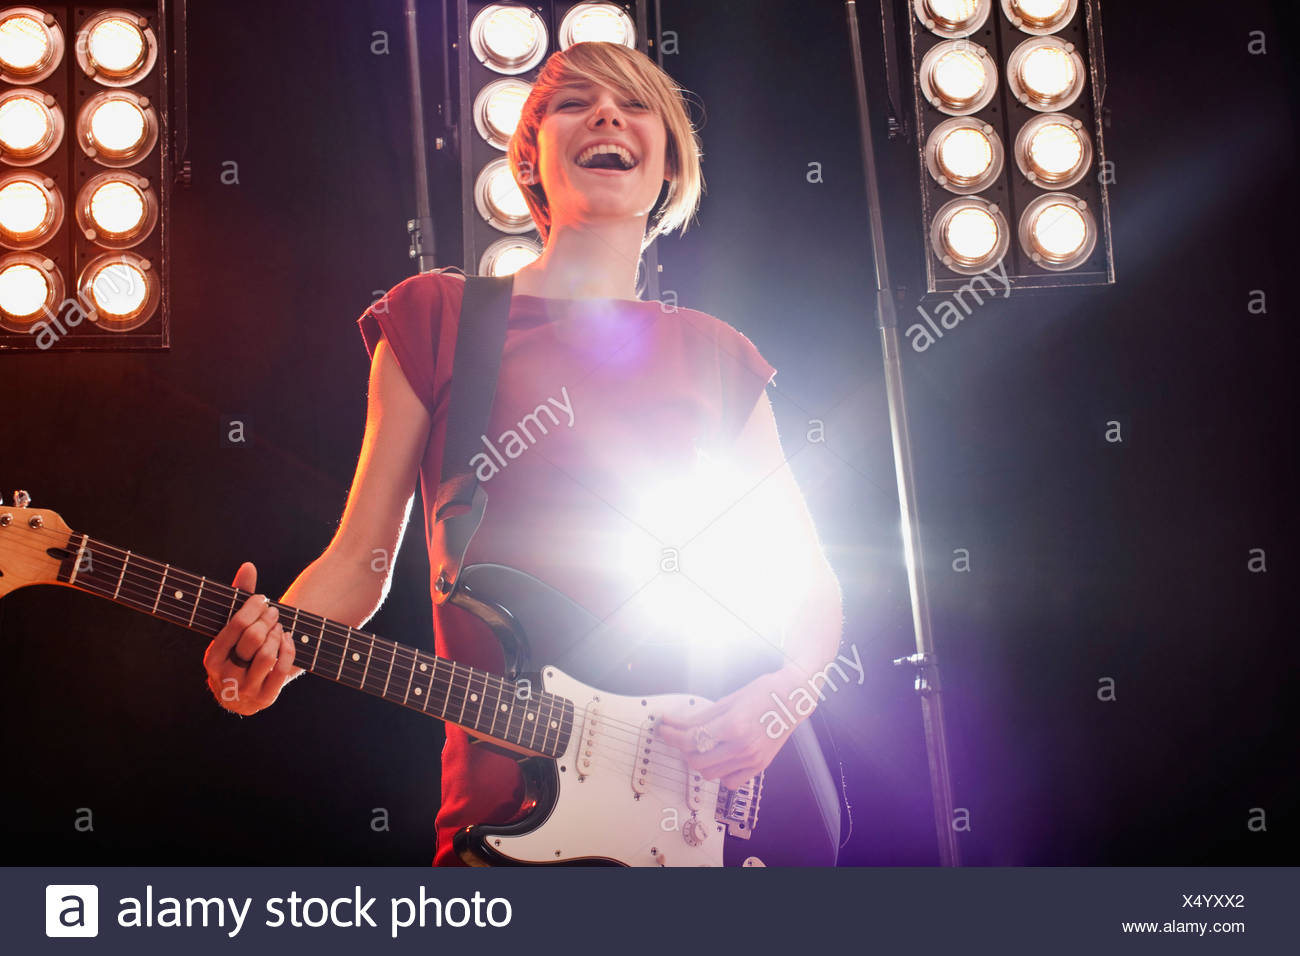 A woman playing electric guitar performing on stage - Stock Image